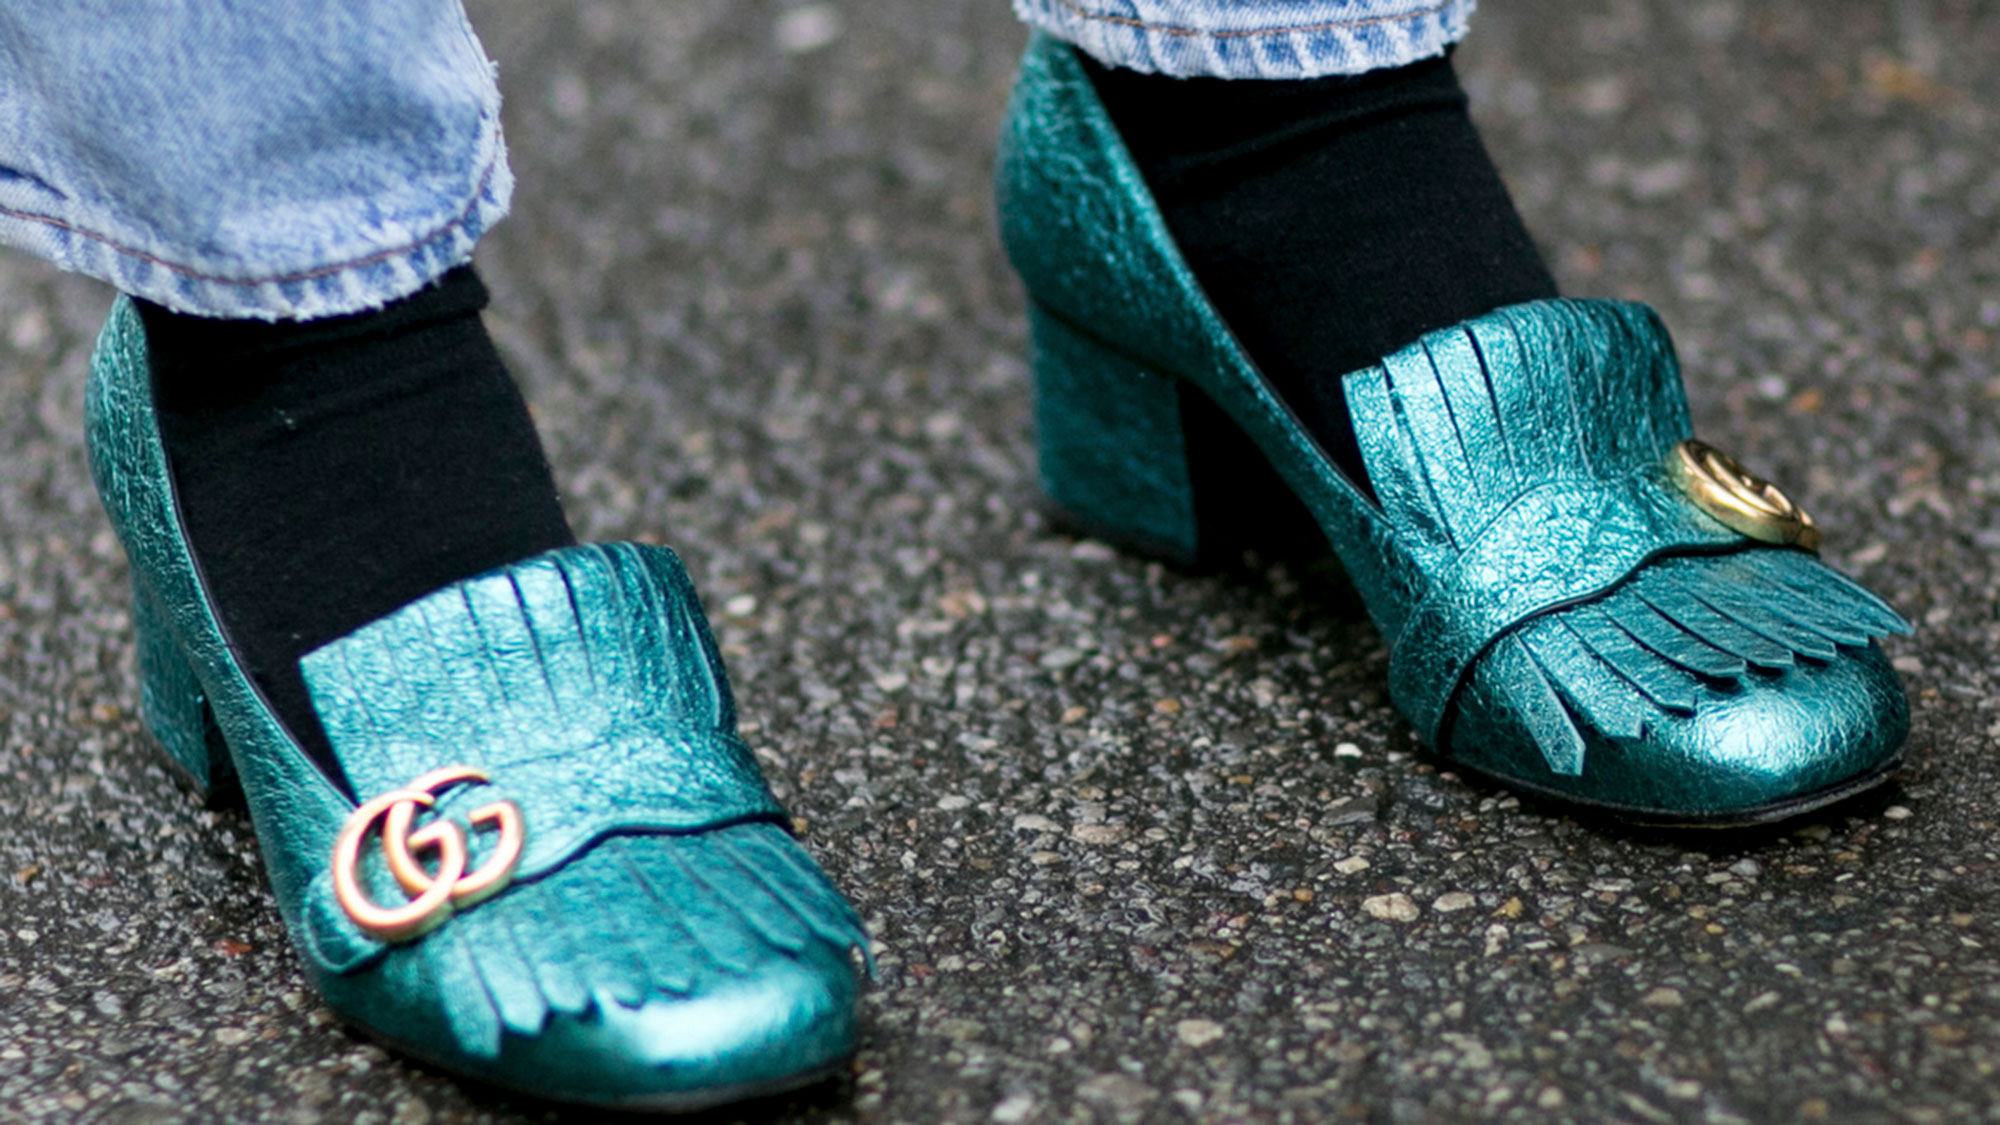 pics ShoesFirst 90s Shoes: Shop the trend at Schuh